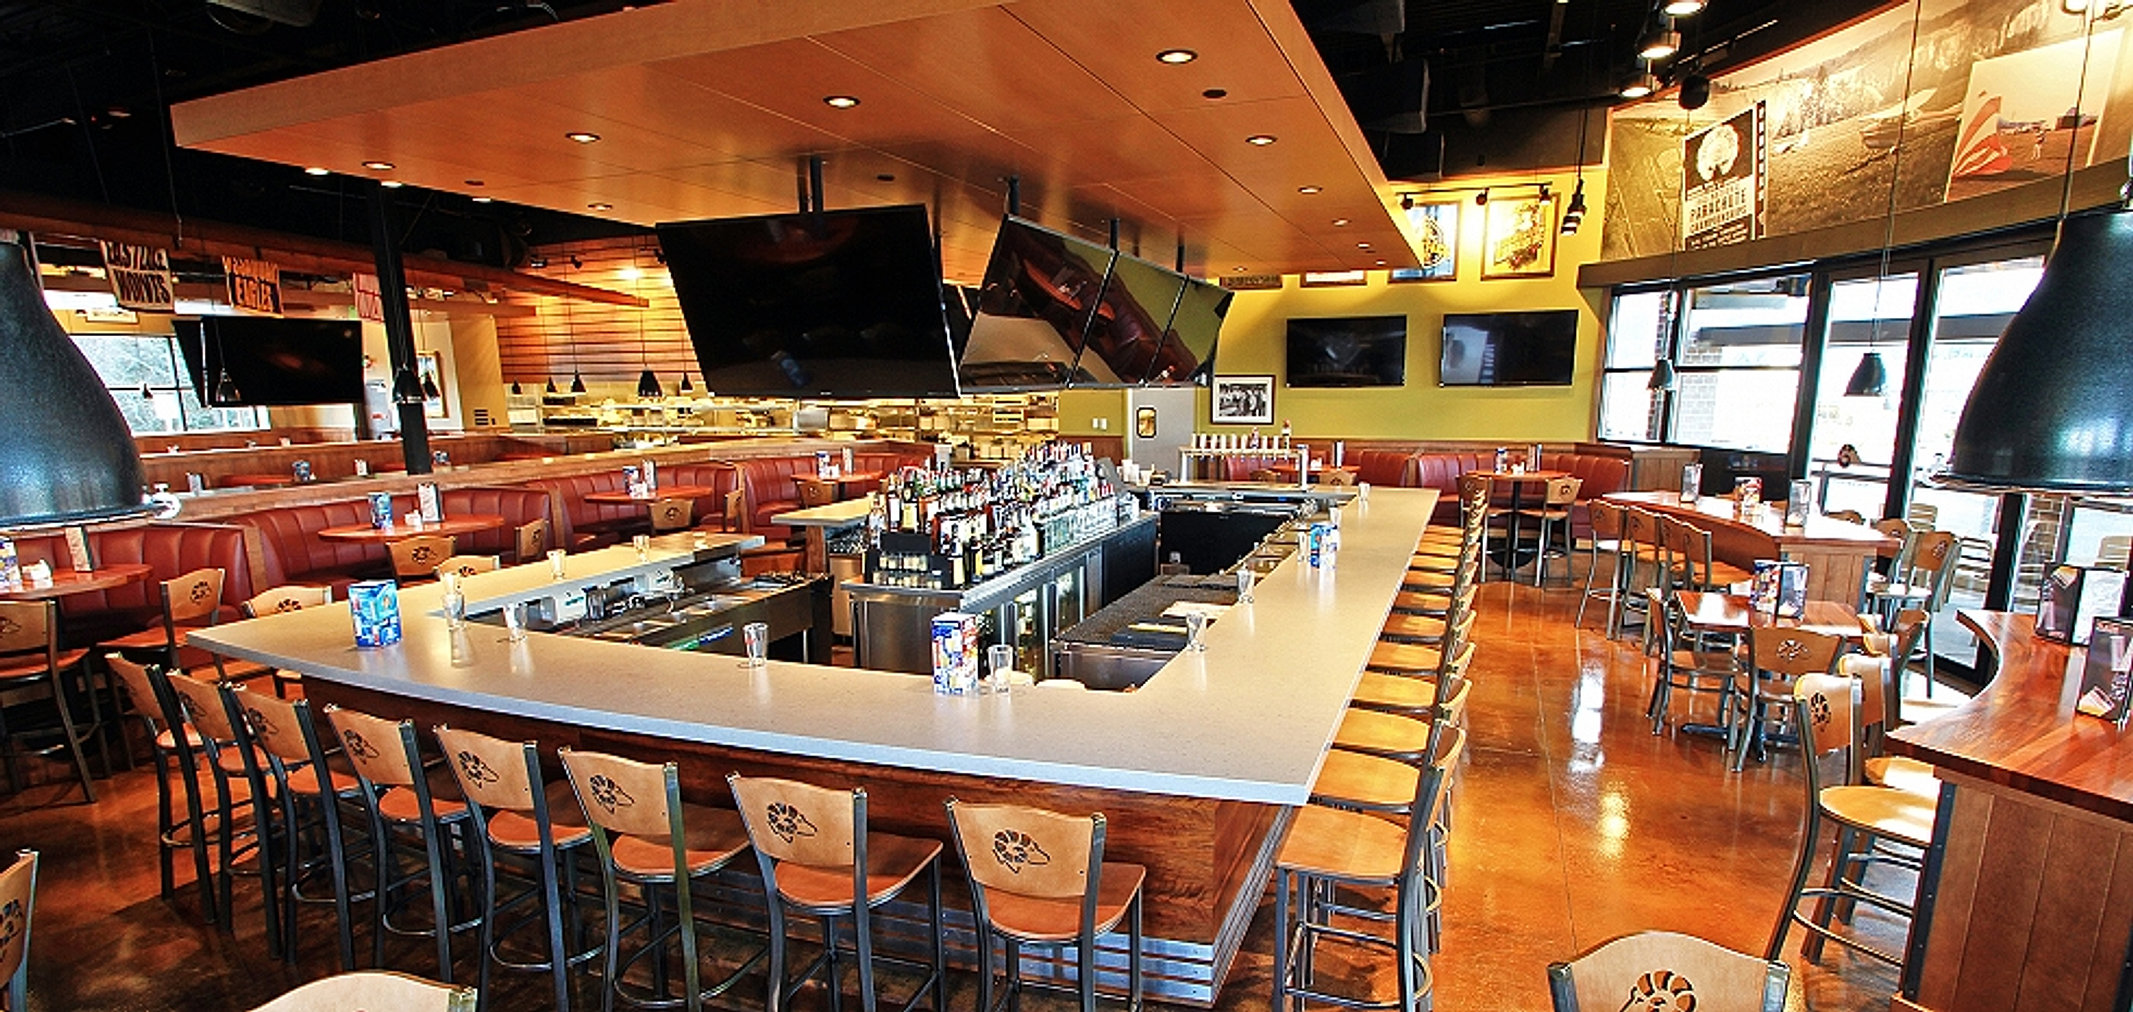 Haggardelectric RAM Restaurant Amp Brewery Issaquah